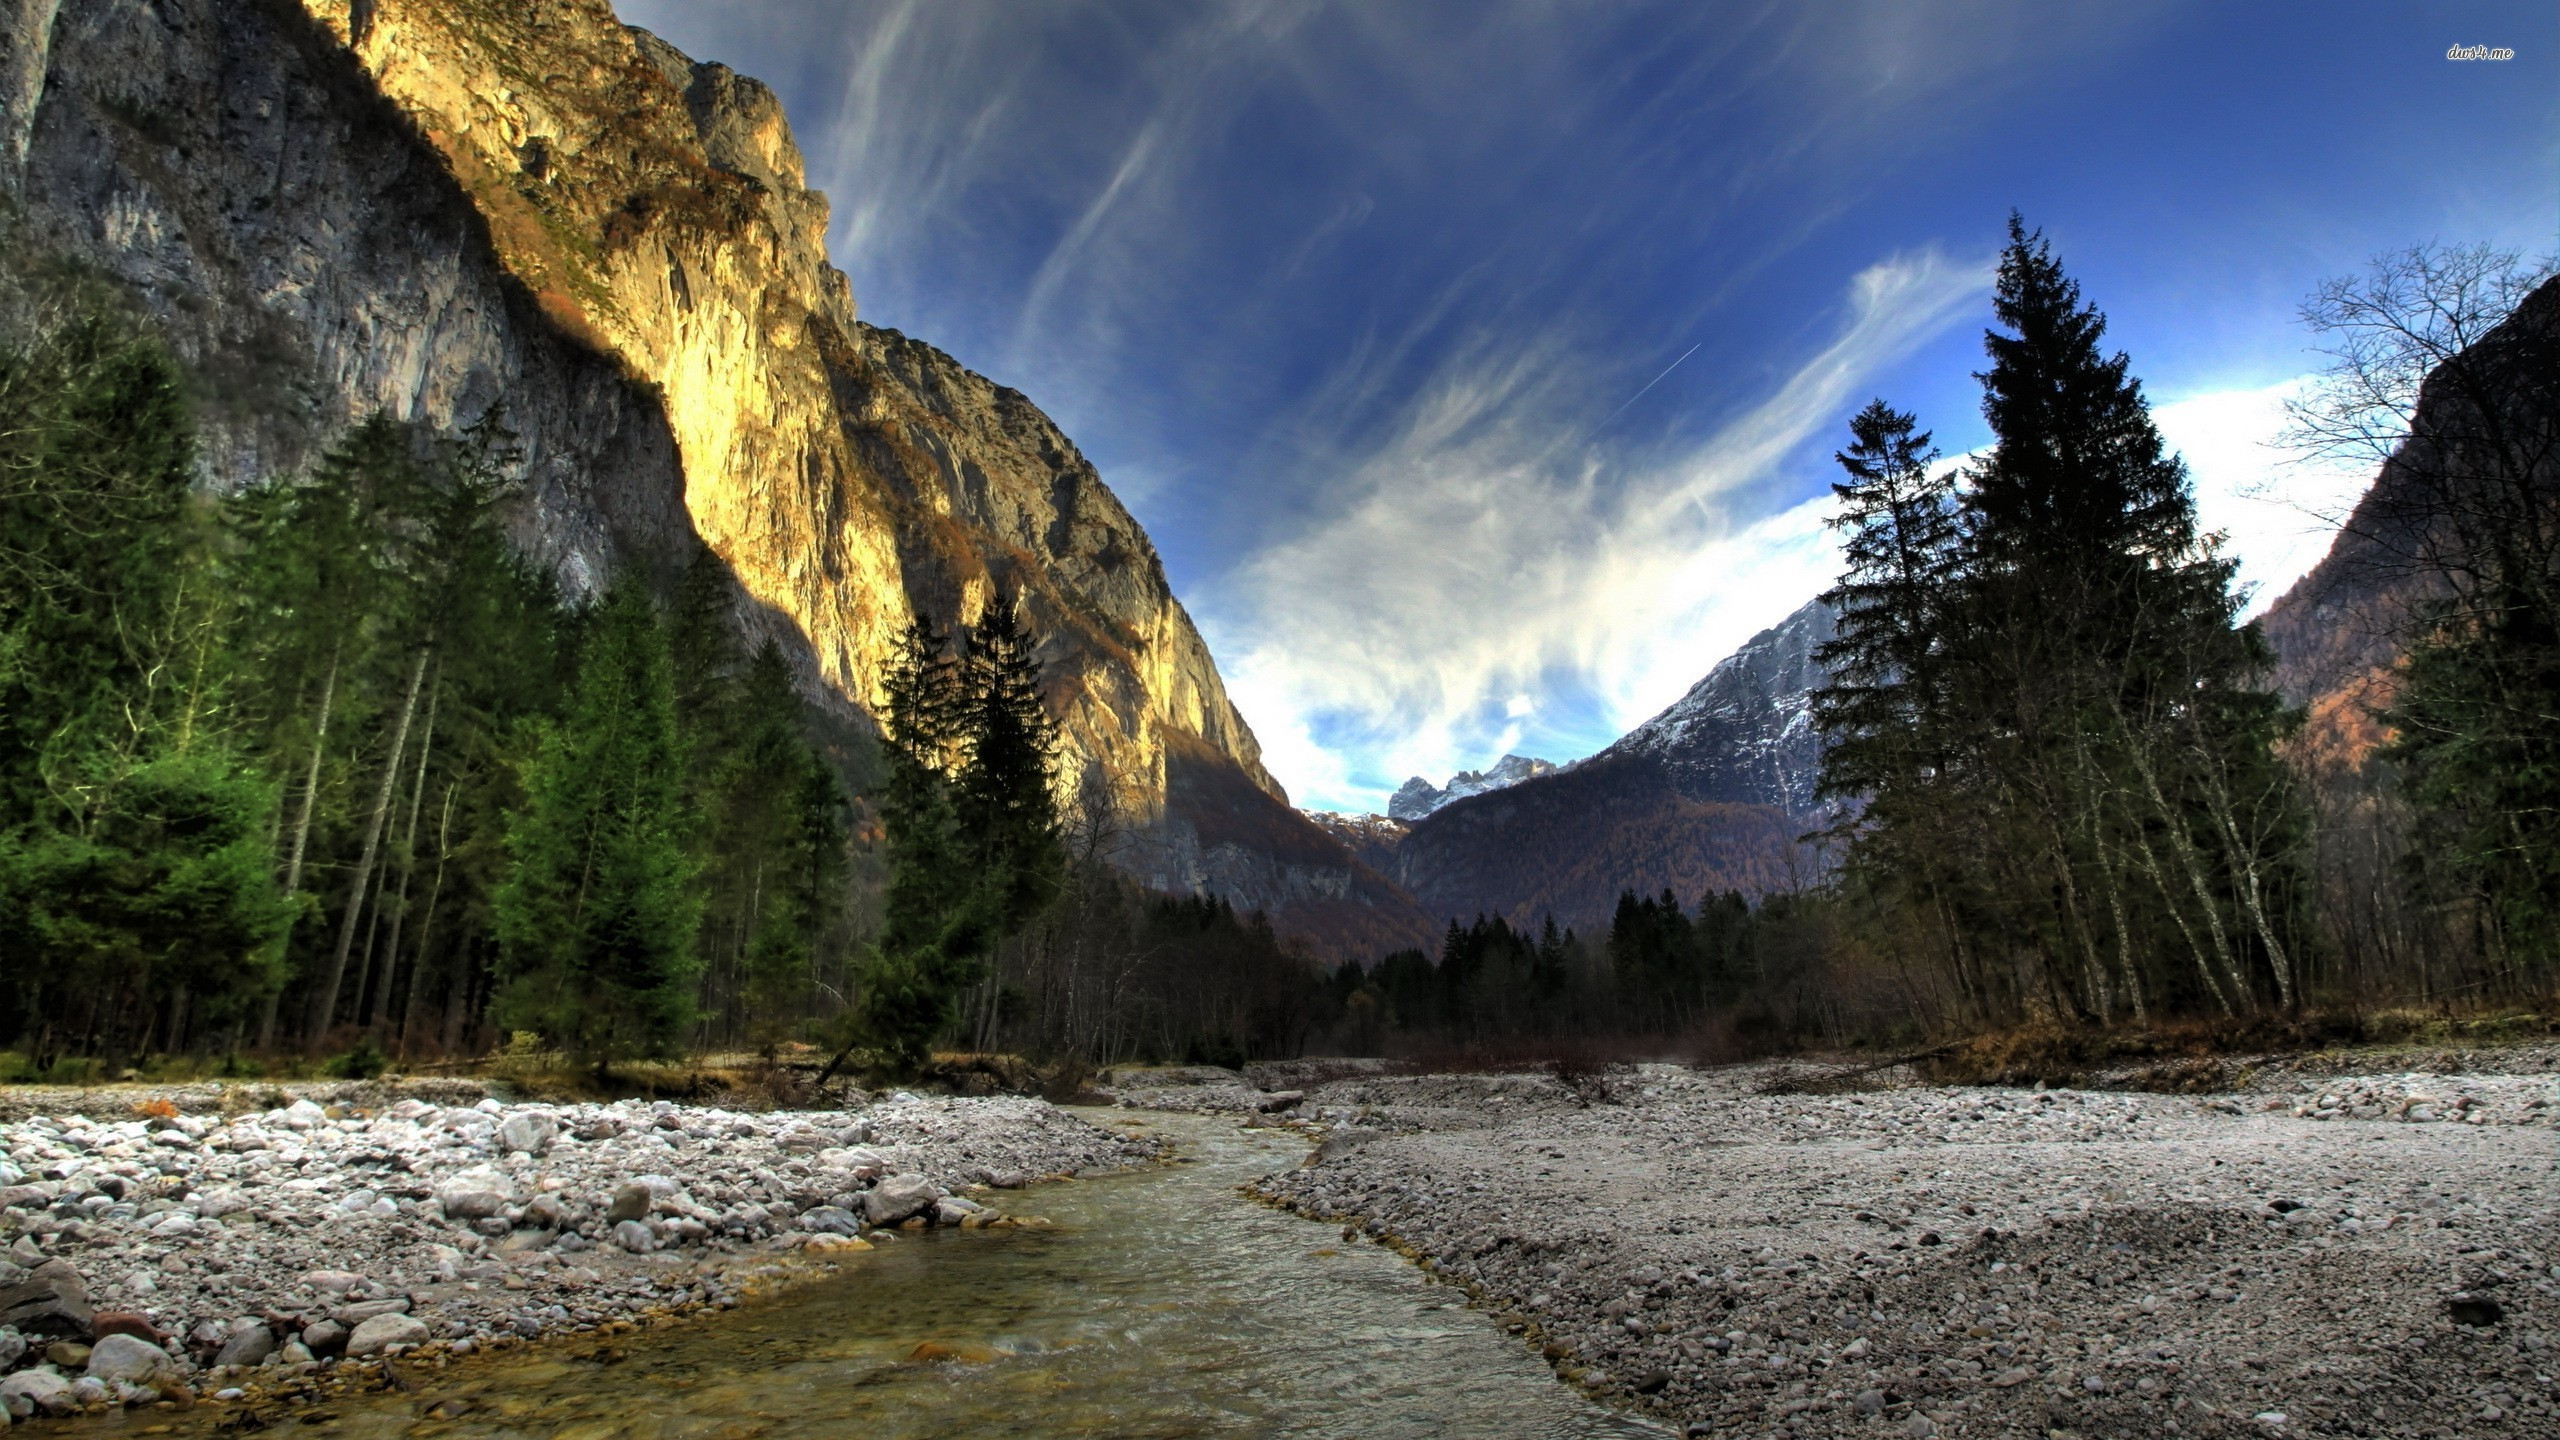 Yosemite National Park Wallpapers Digitalhintnet 2560x1440